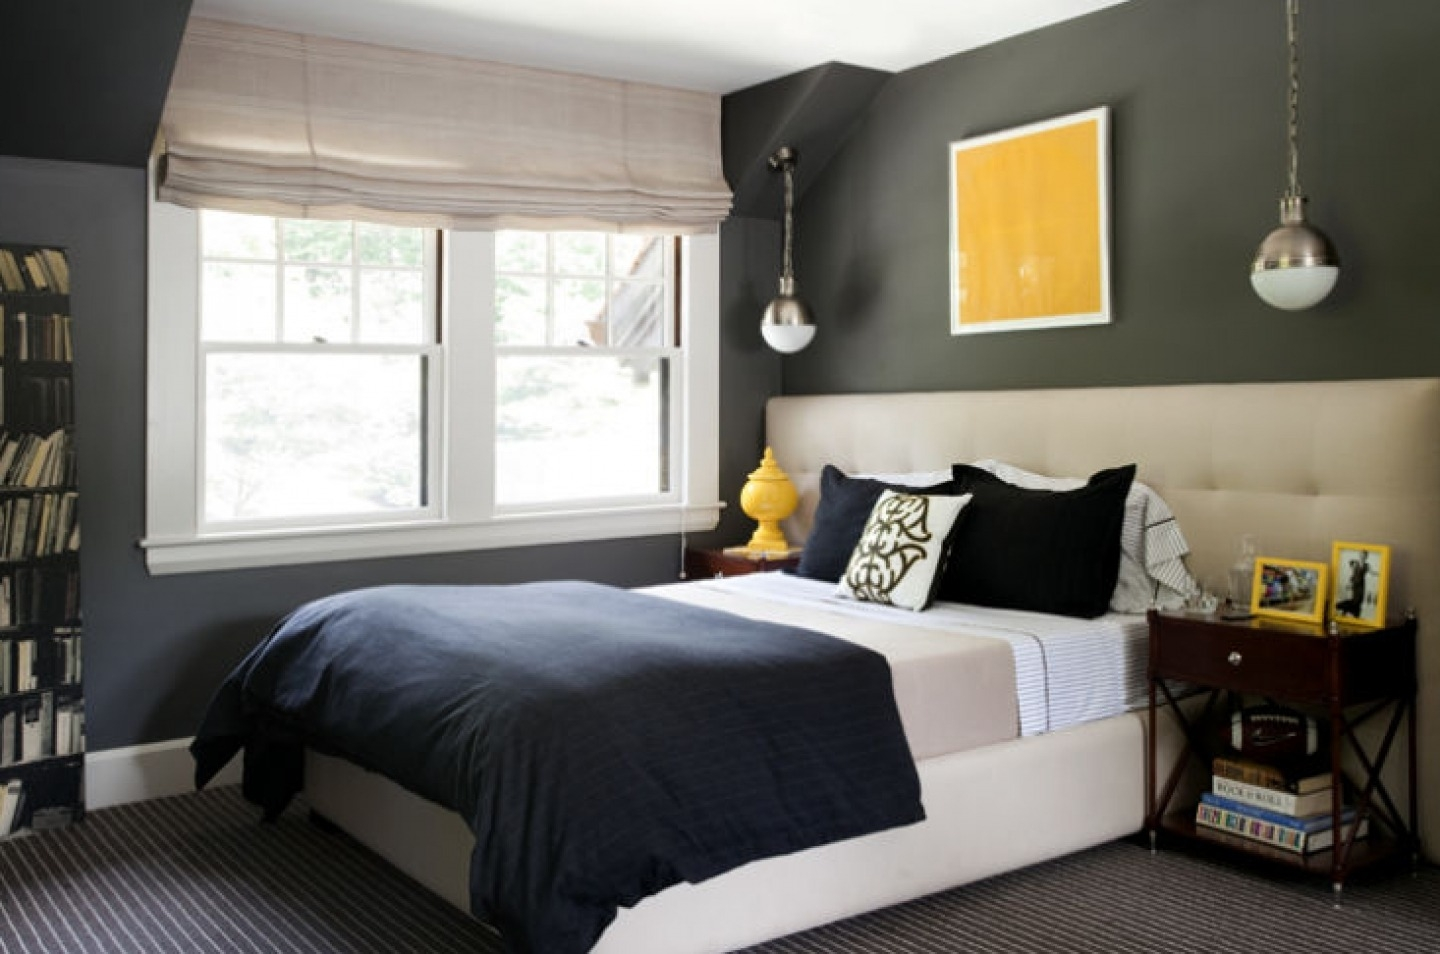 Best Mens Bedroom Ideas, Cool and Masculine - Simplyhome on Small Room Ideas For Guys  id=87558